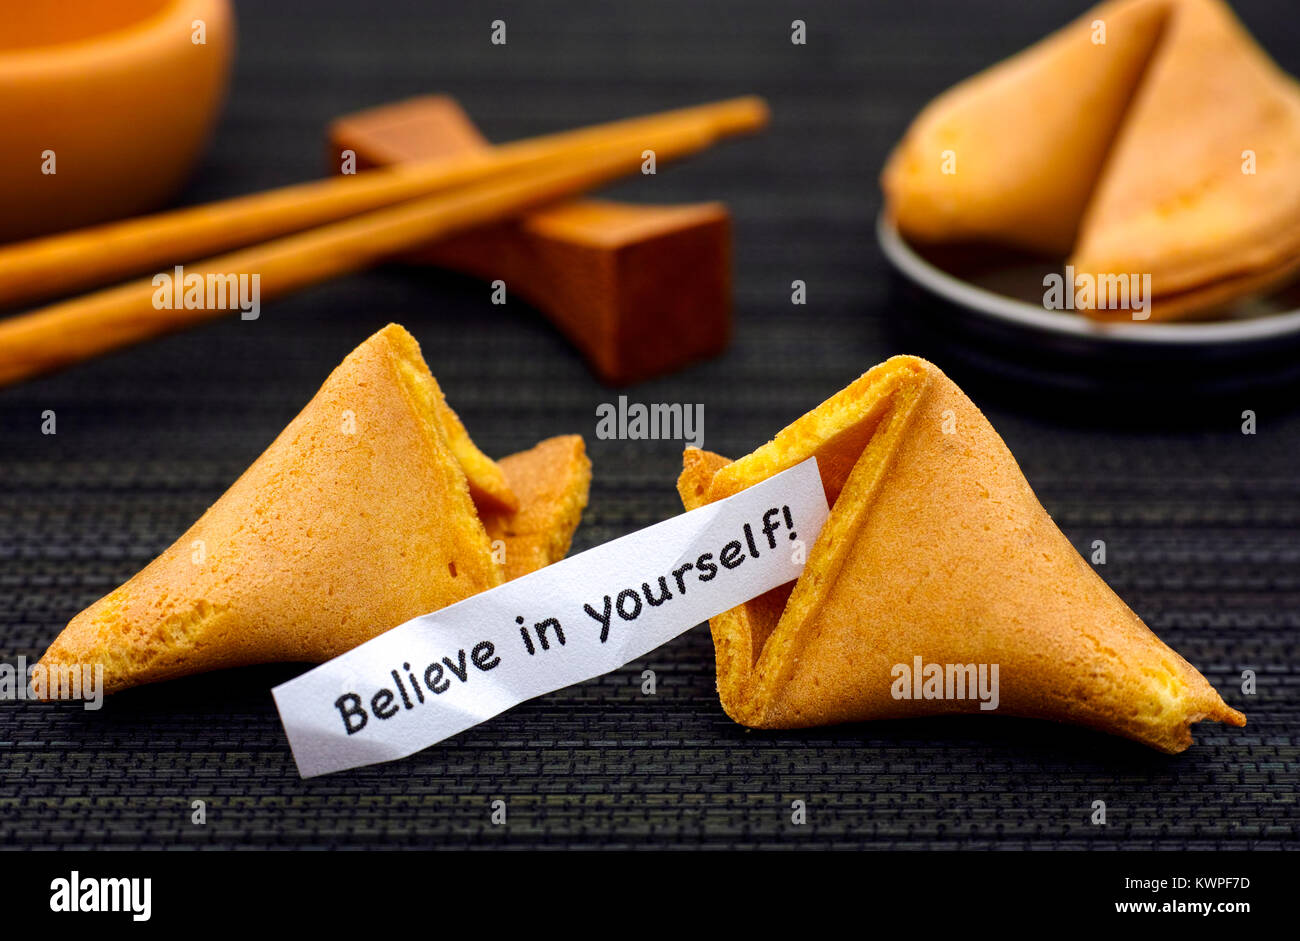 Paper strip with phrase Believe in yourself from fortune cookie, another cookie and chopsticks on black napkin background. - Stock Image